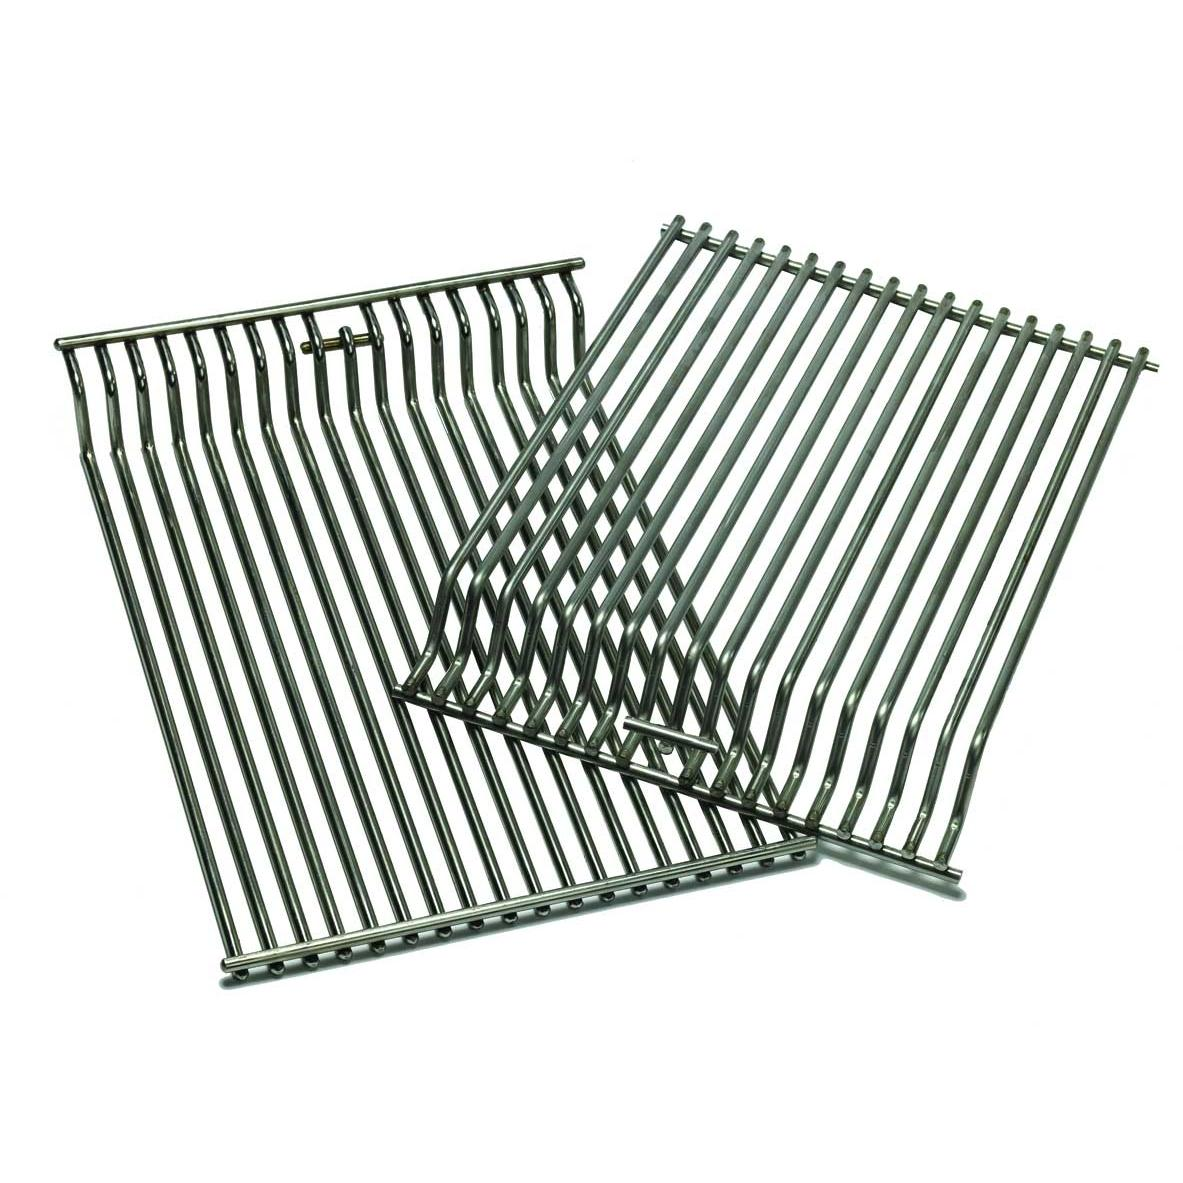 Broilmaster Stainless Steel Rod Cooking Grids For Size 4 Gas Grills (Set Of 2)